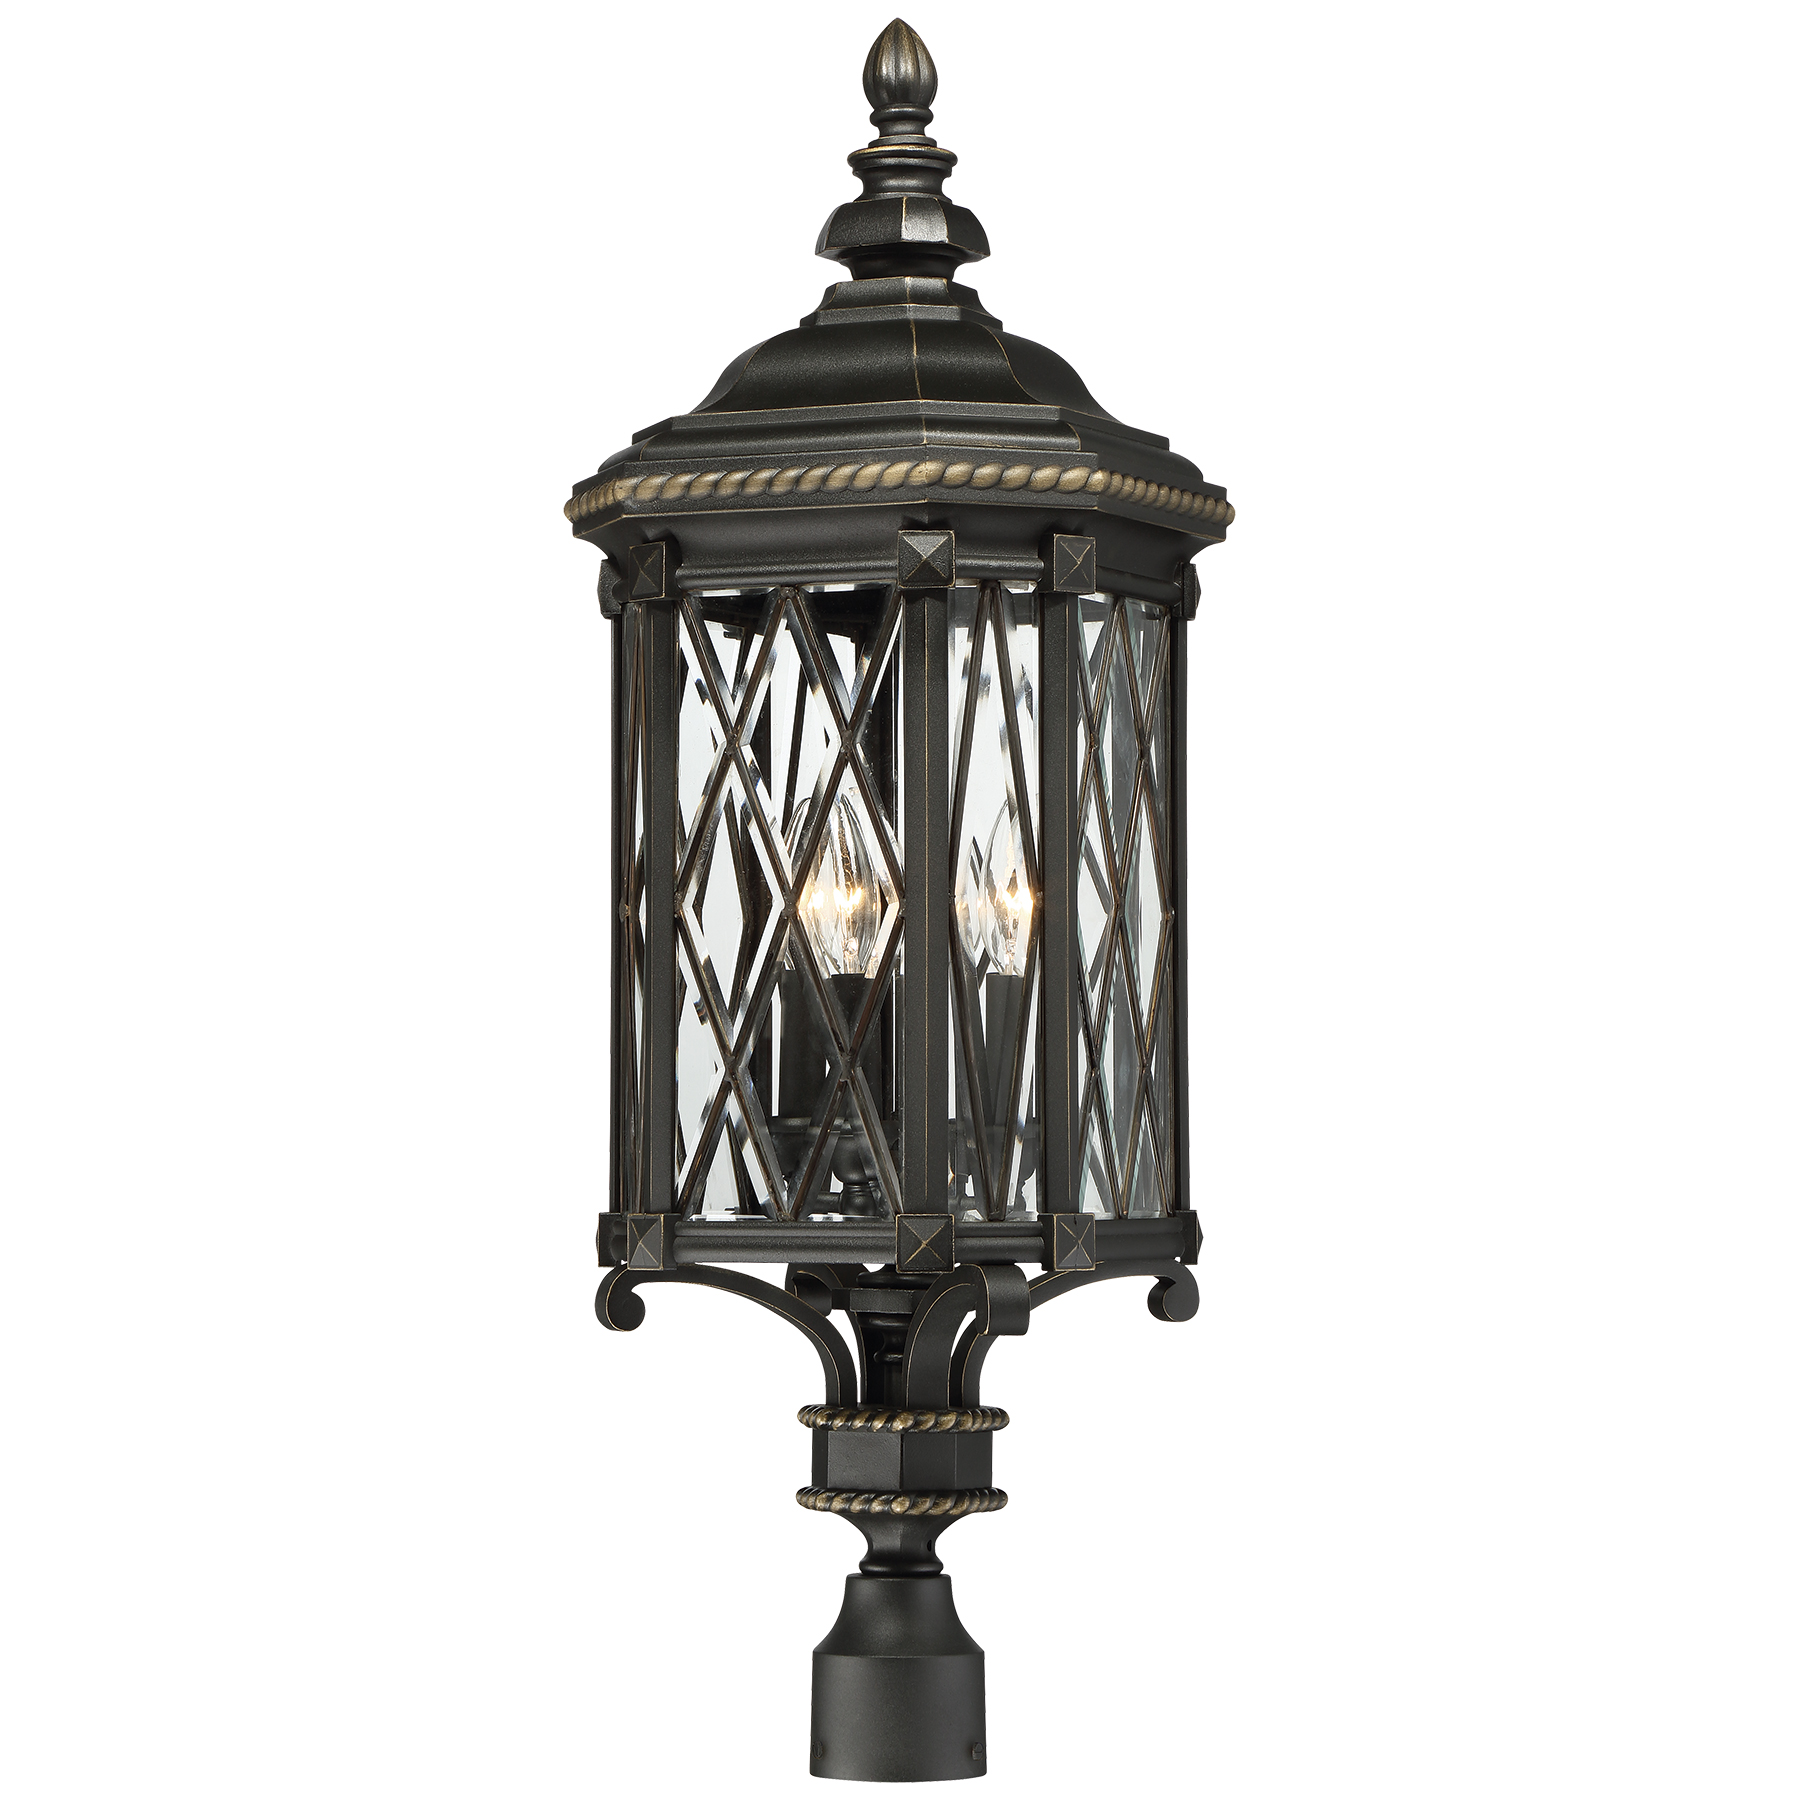 Minka group brands the great outdoorsreg 9326 585 bexley manor 4 light outdoor post mount aloadofball Images